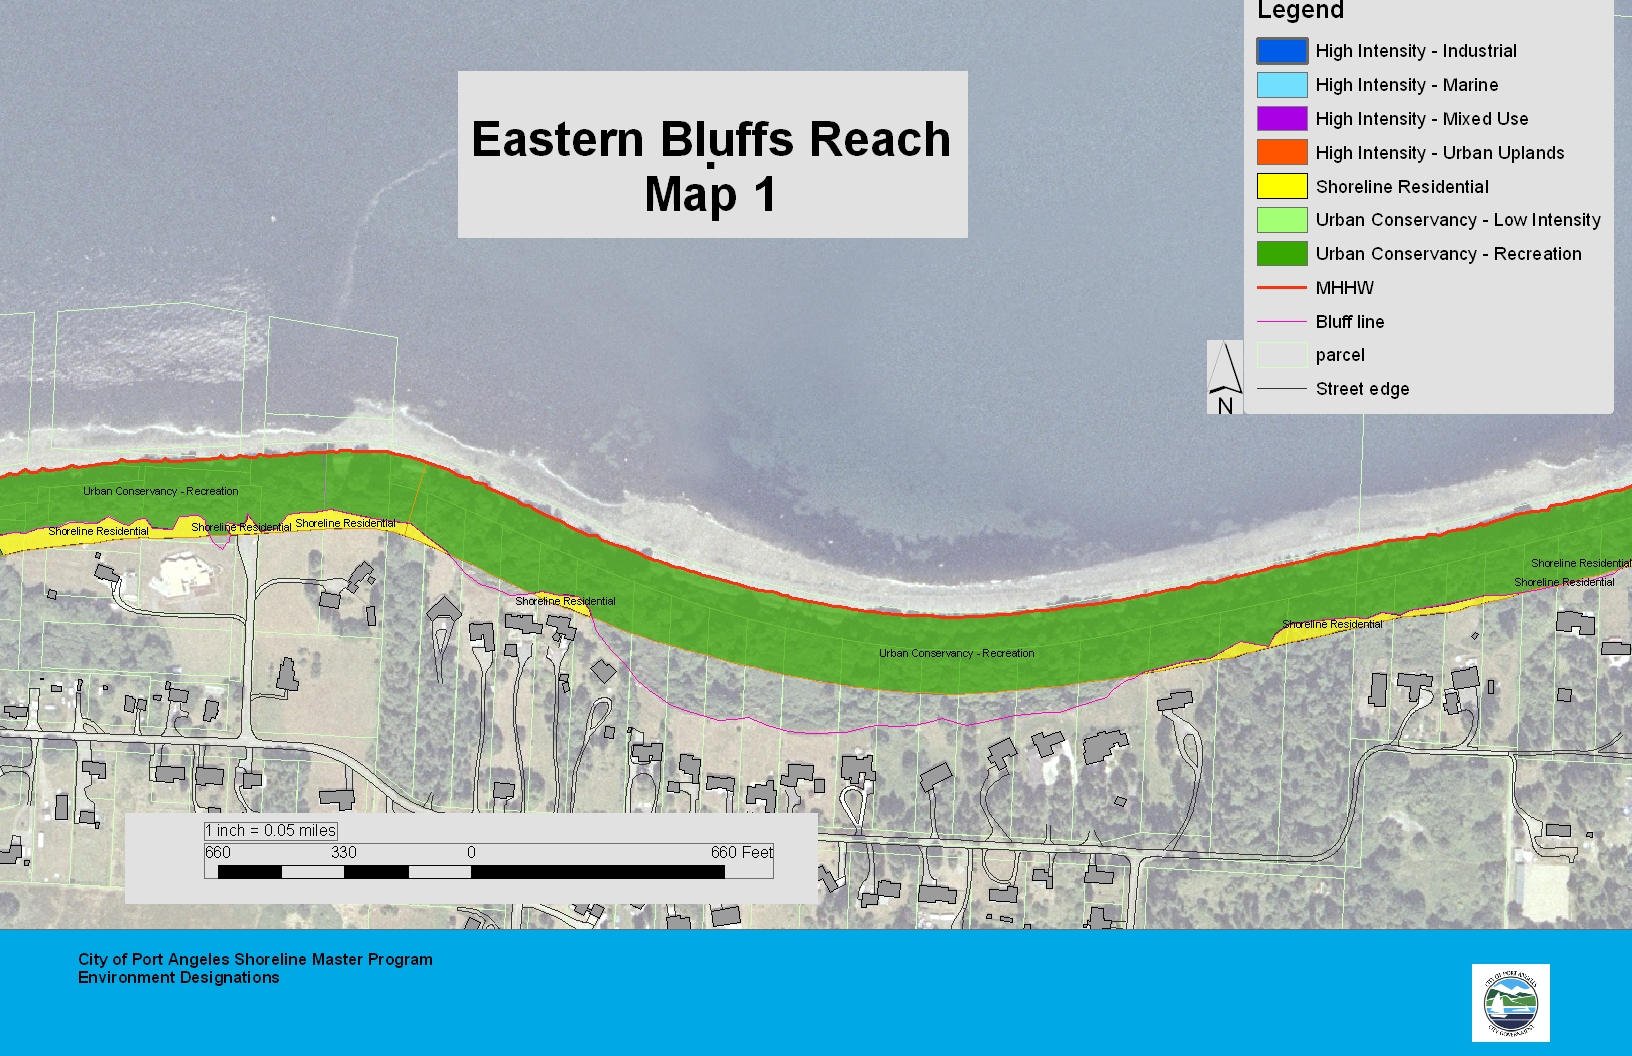 Eastern Bluffs Reach Map